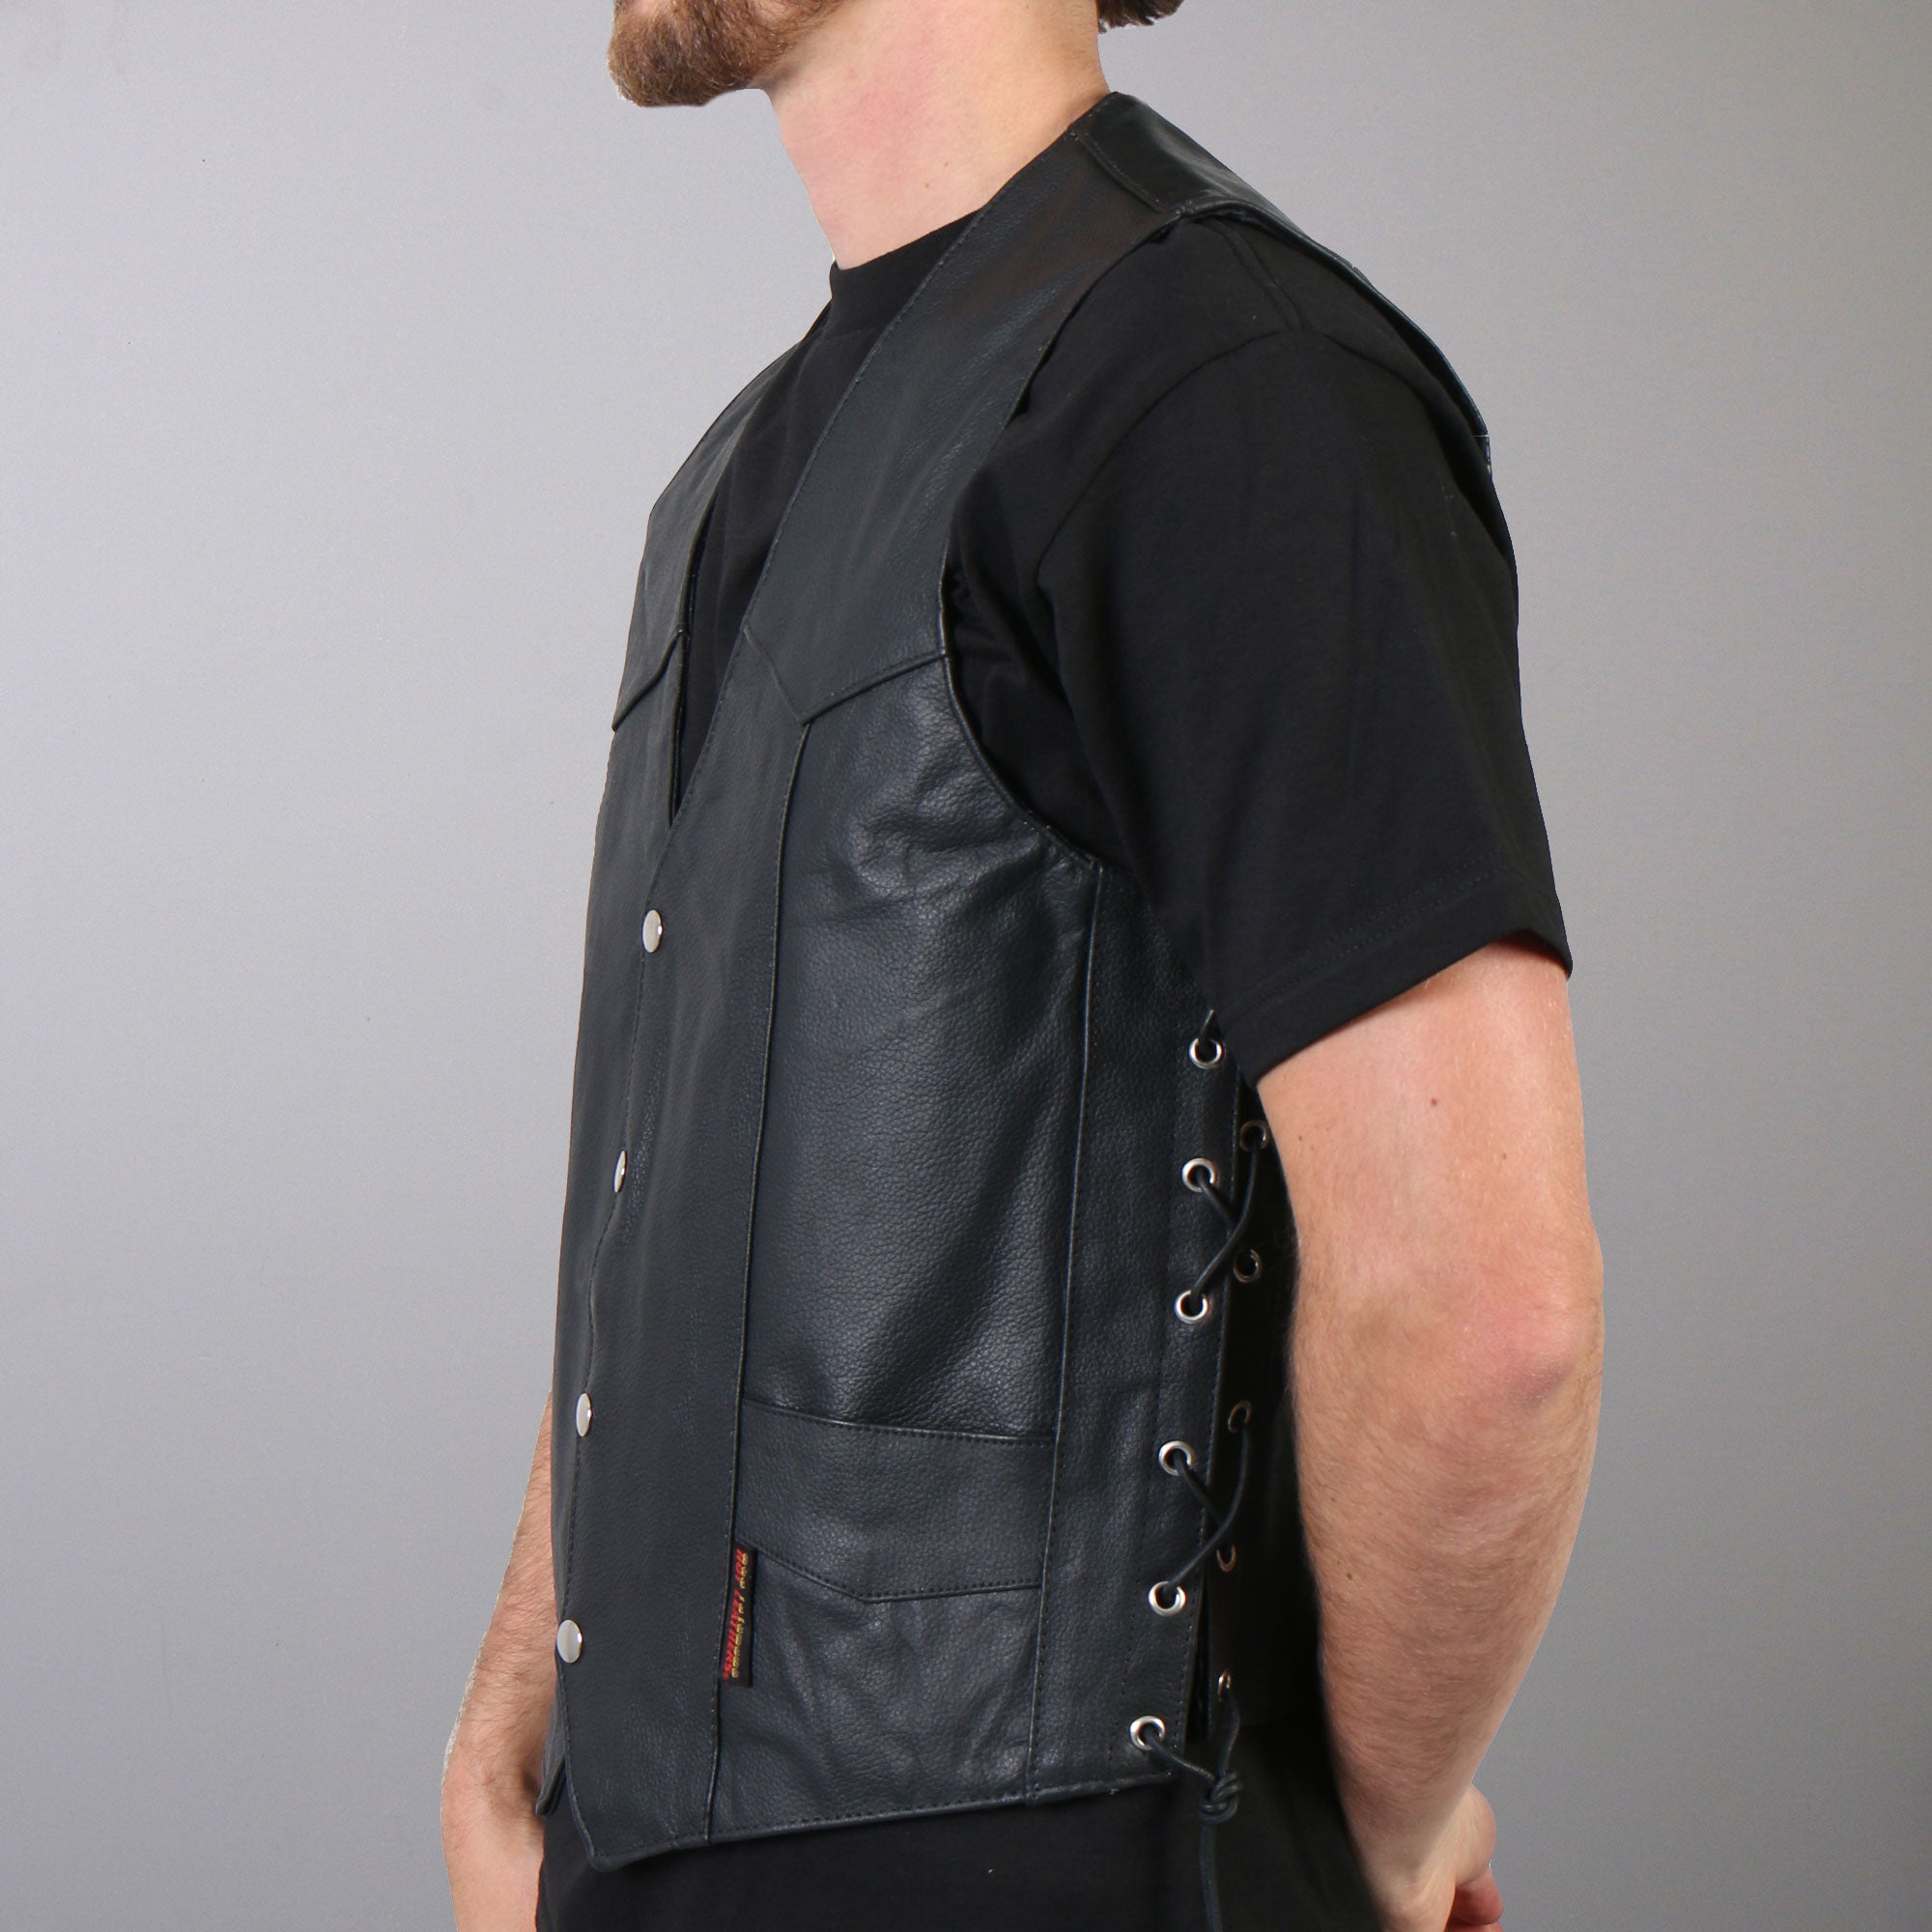 Hot Leathers Men's Concealed Carry Leather Vest